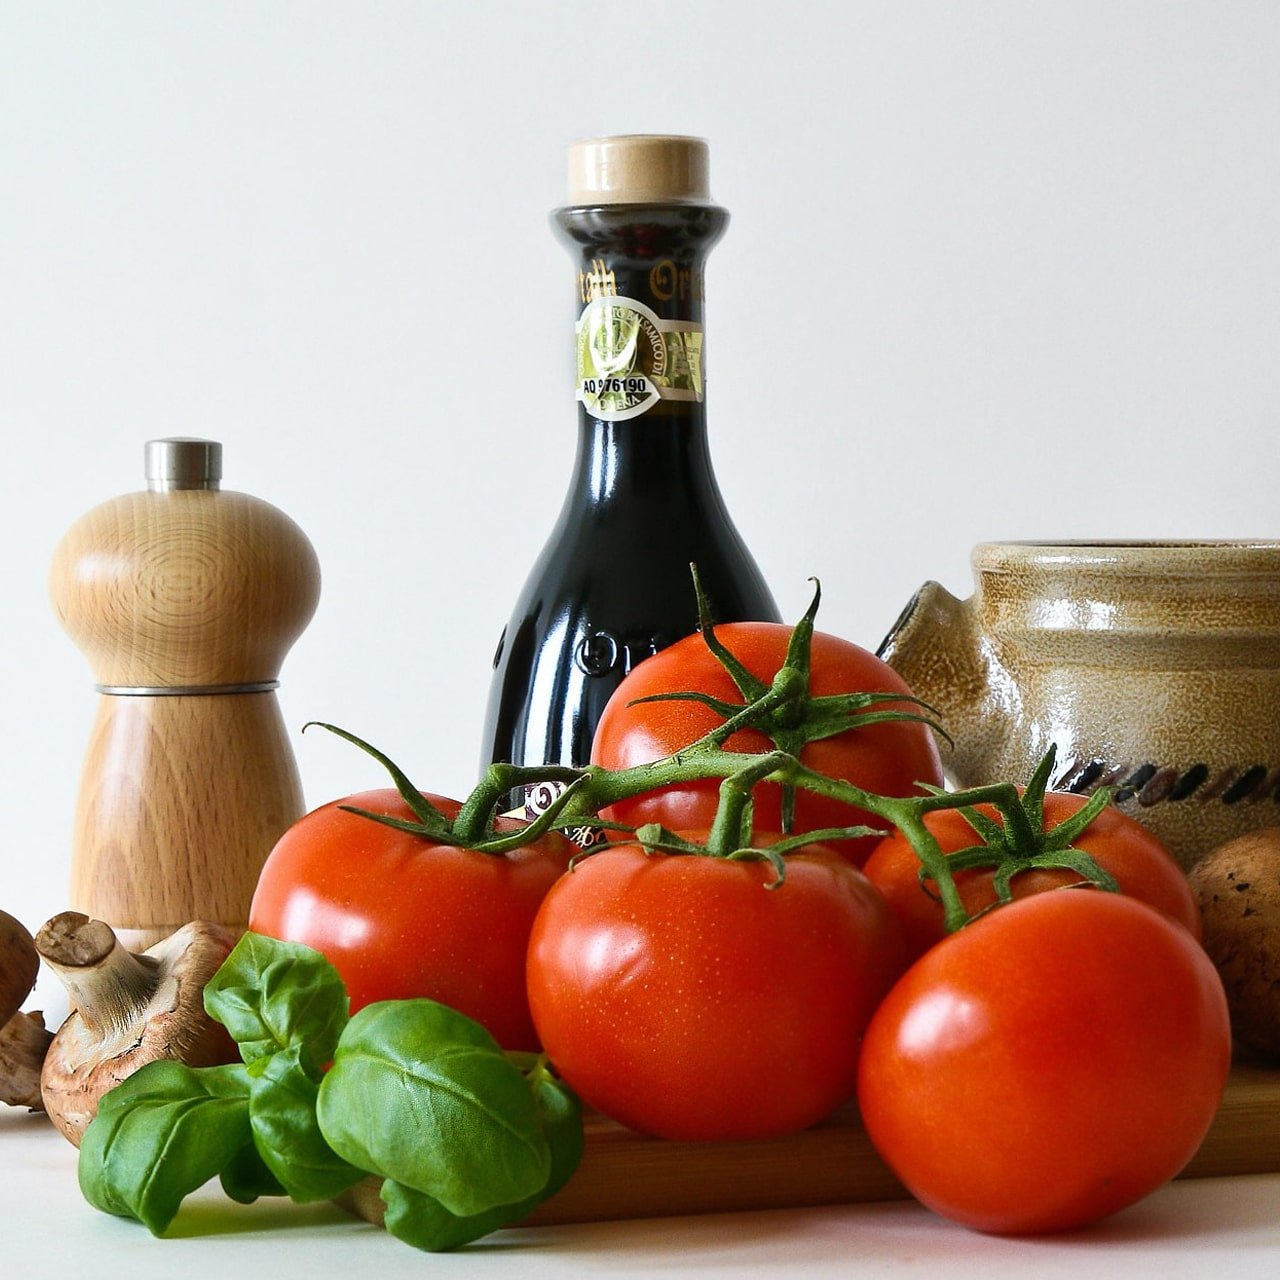 Tomatoes and condiments